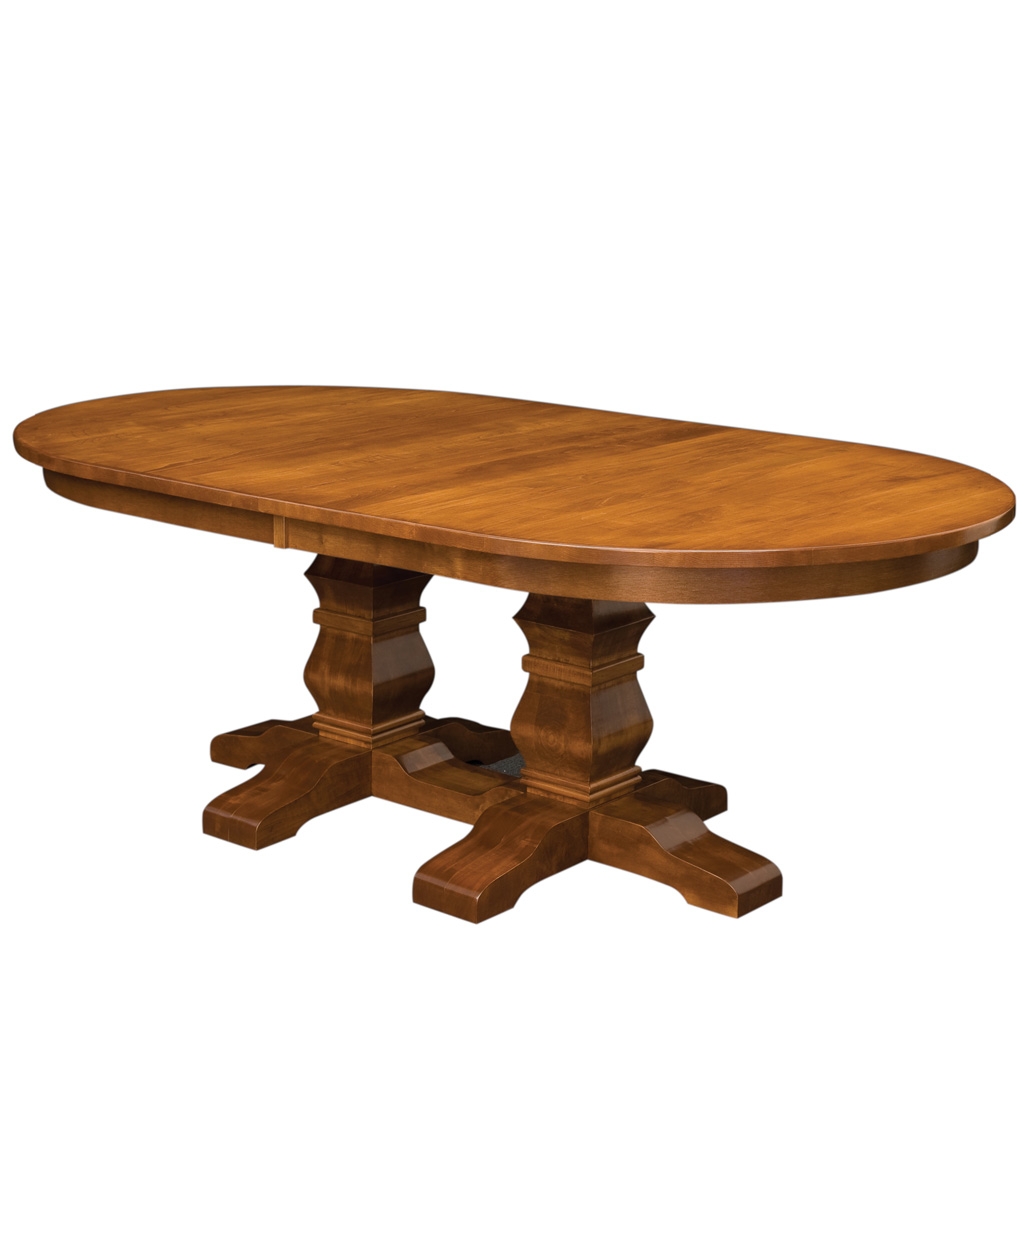 Terrific dining room table pedestal ideas best inspiration home bradbury double pedestal table amish direct furniture dining room table pedestal bases dzzzfo